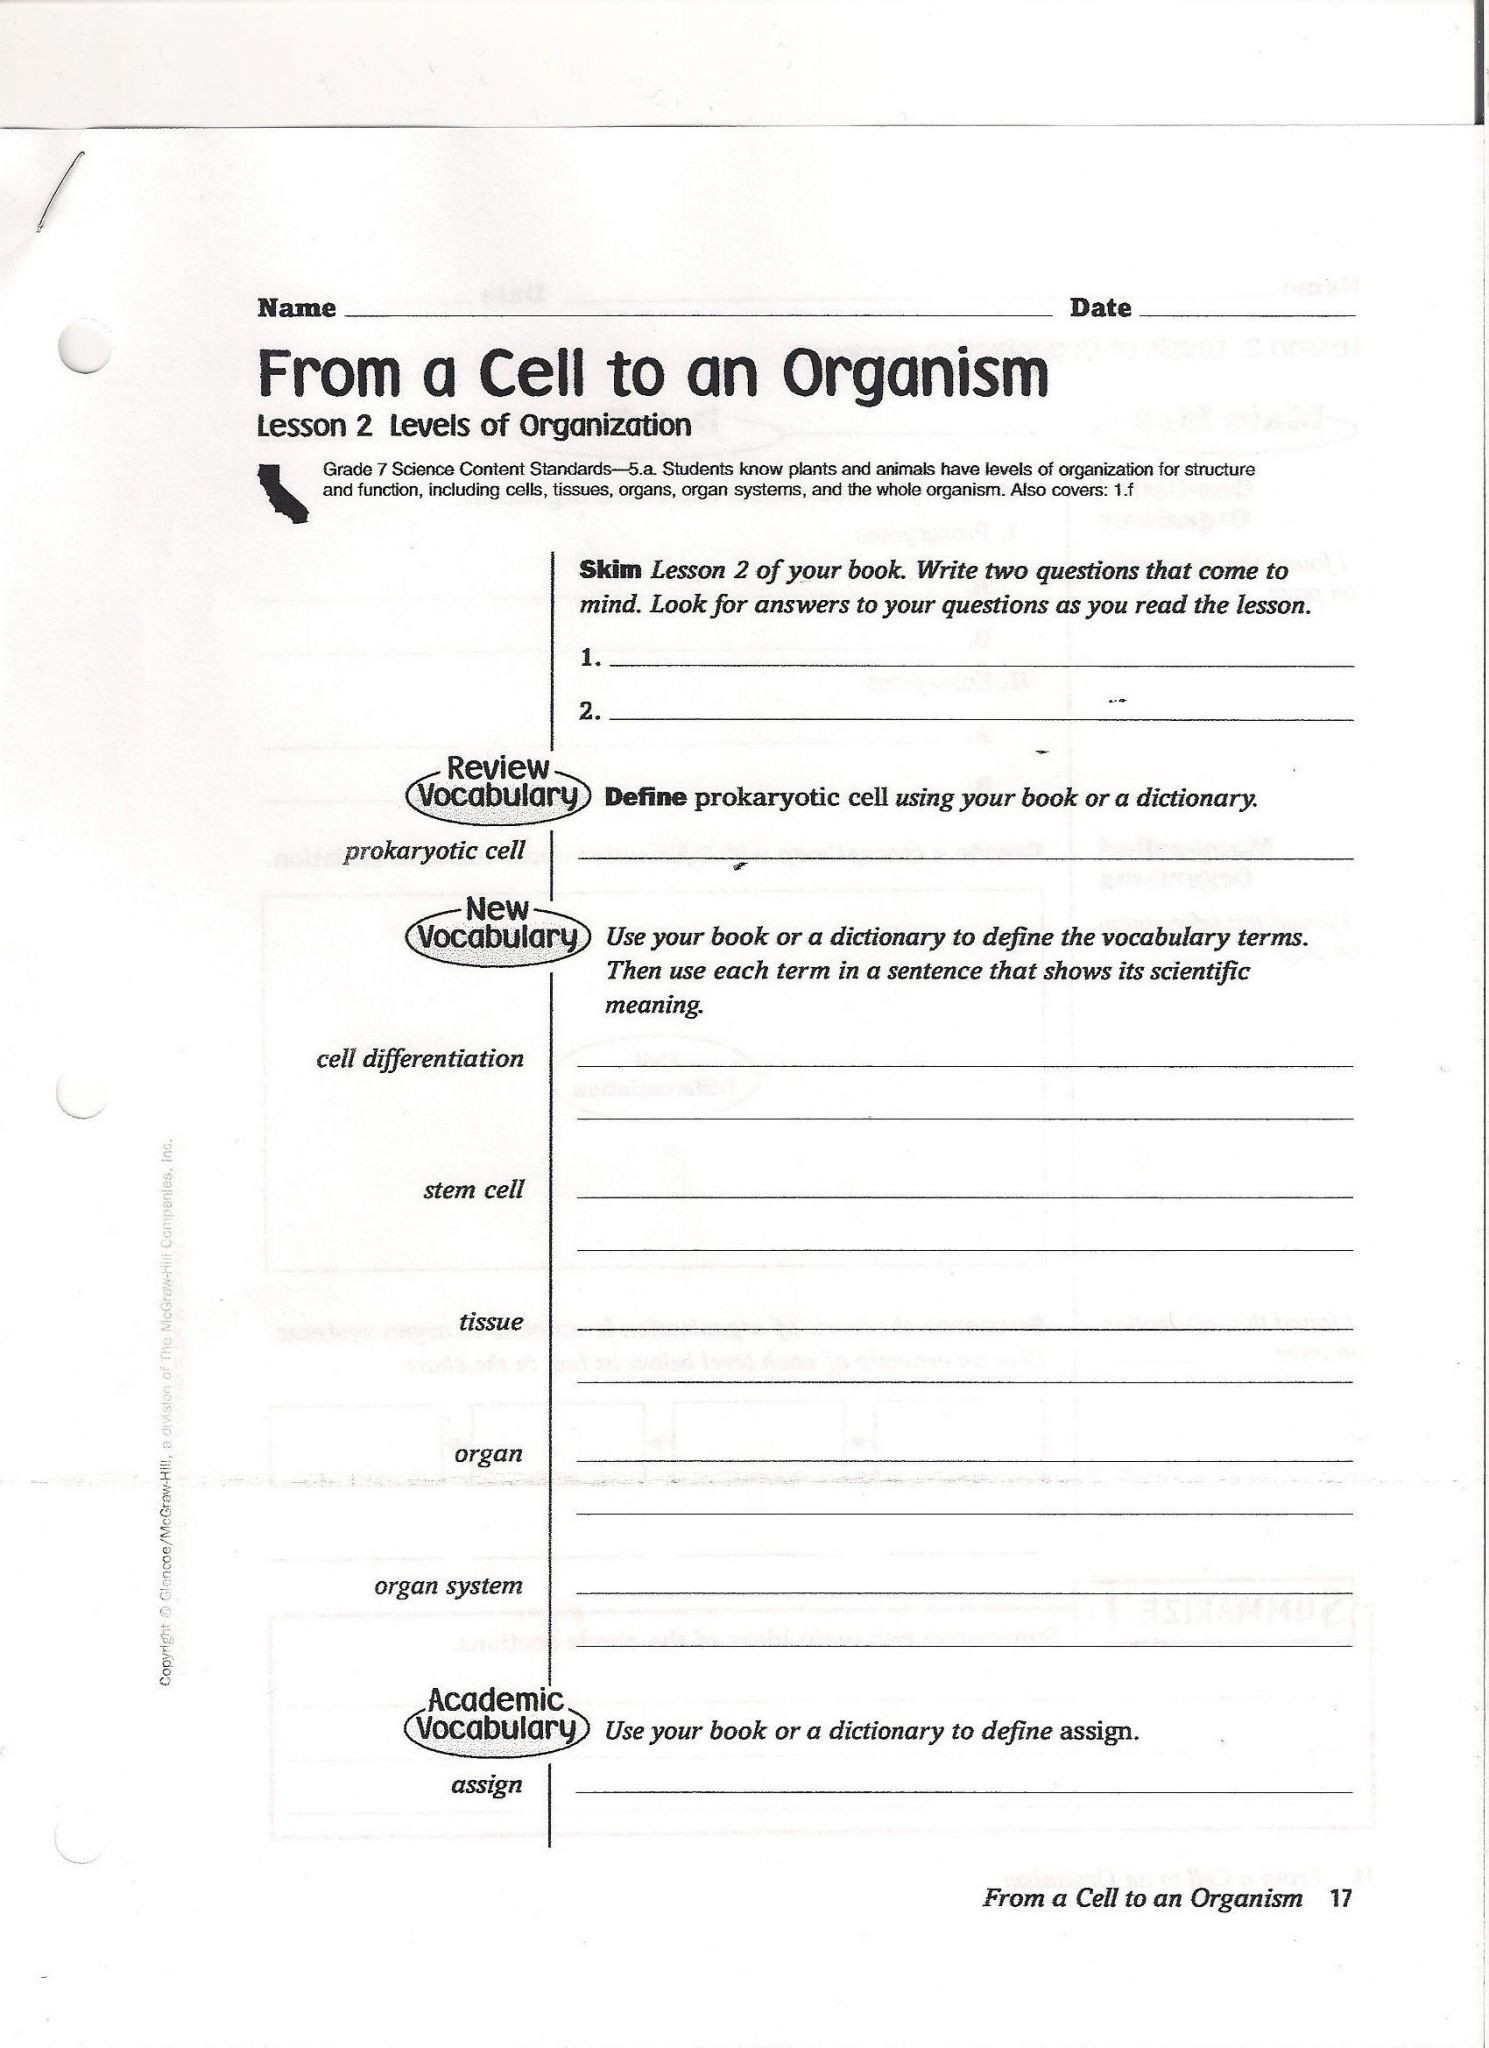 High School Environmental Science Worksheets 9th Grade Environmental Science Worksheets